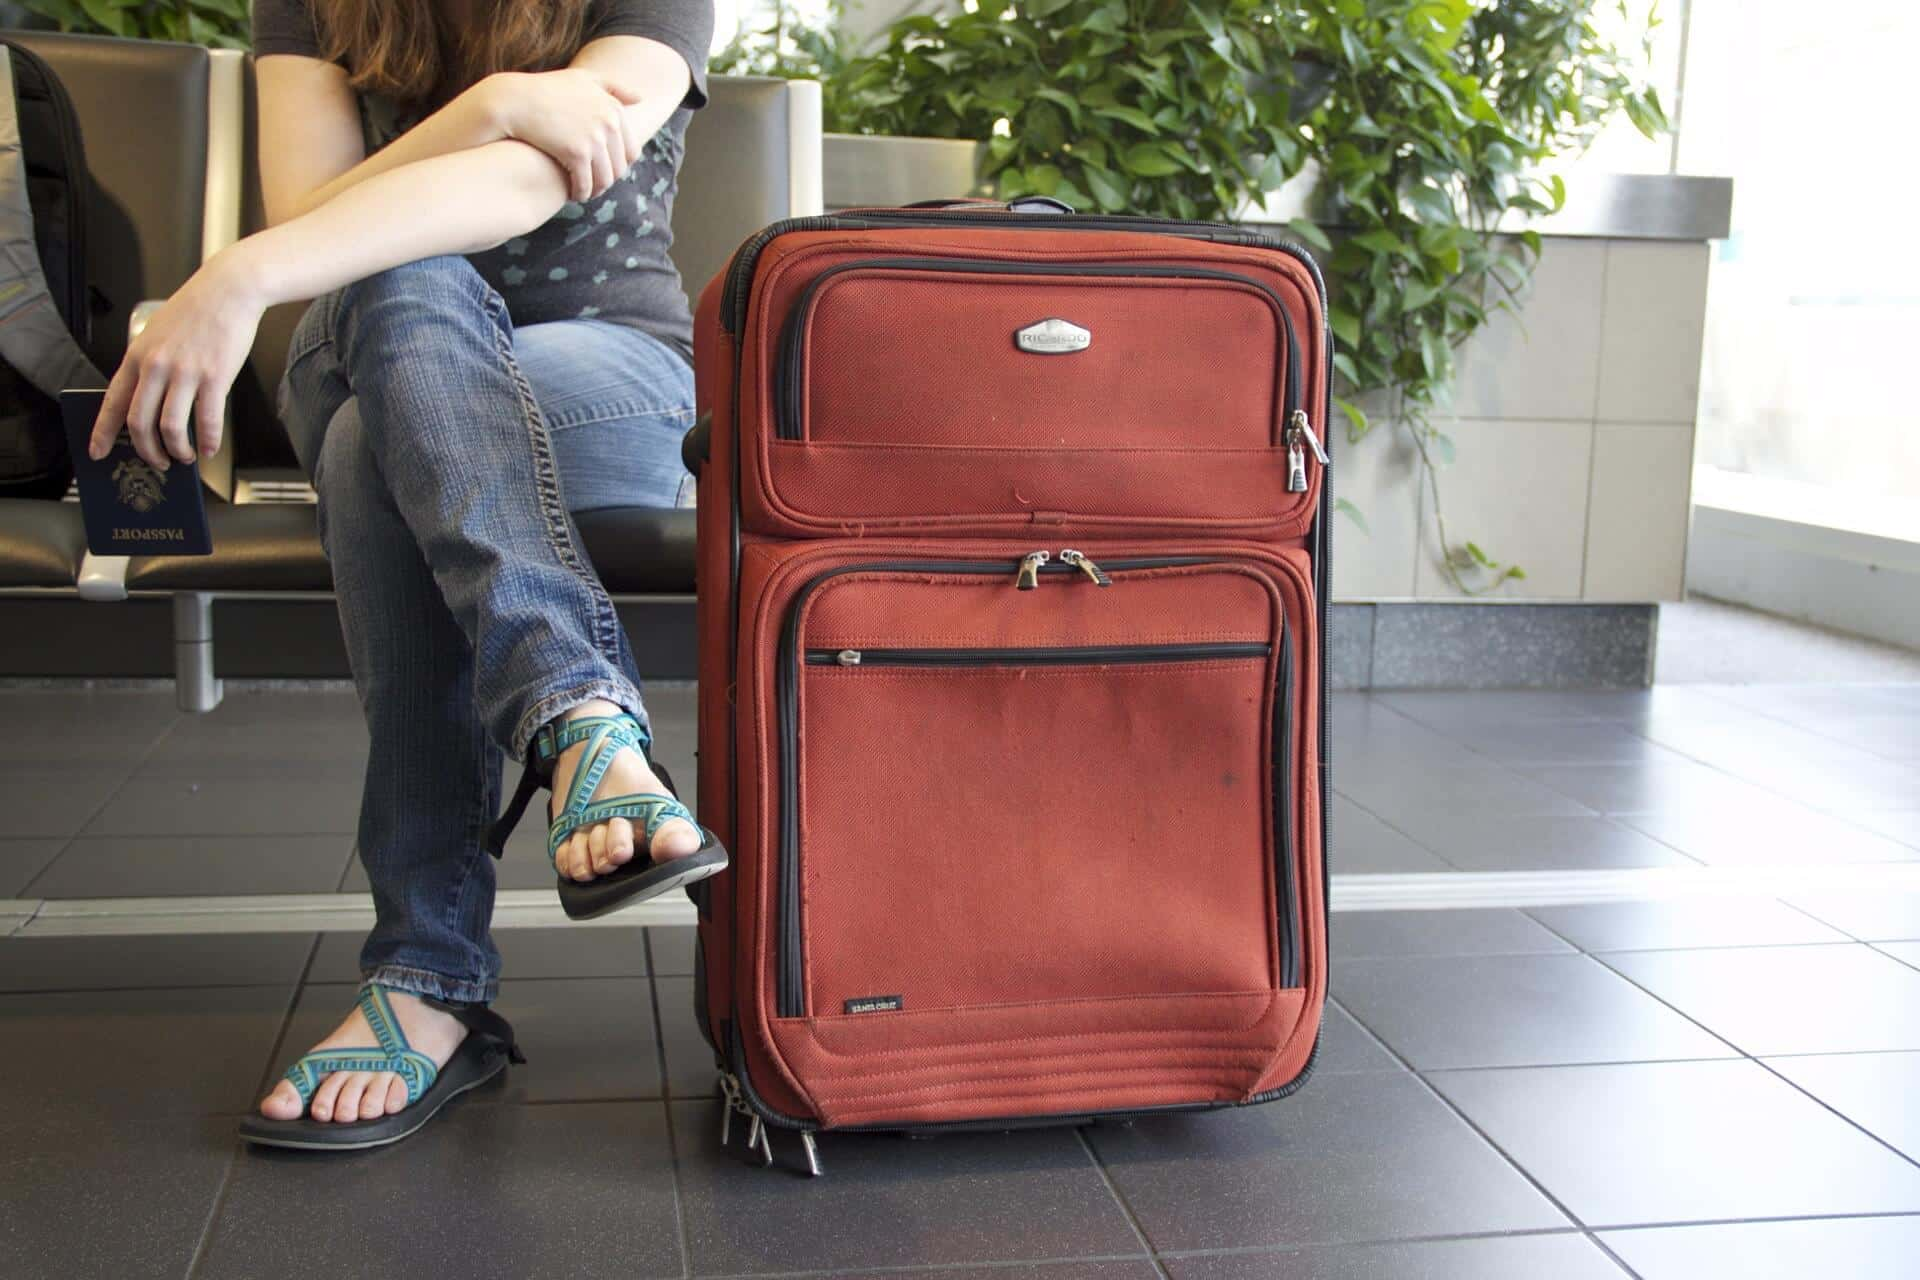 denier fabric luggage